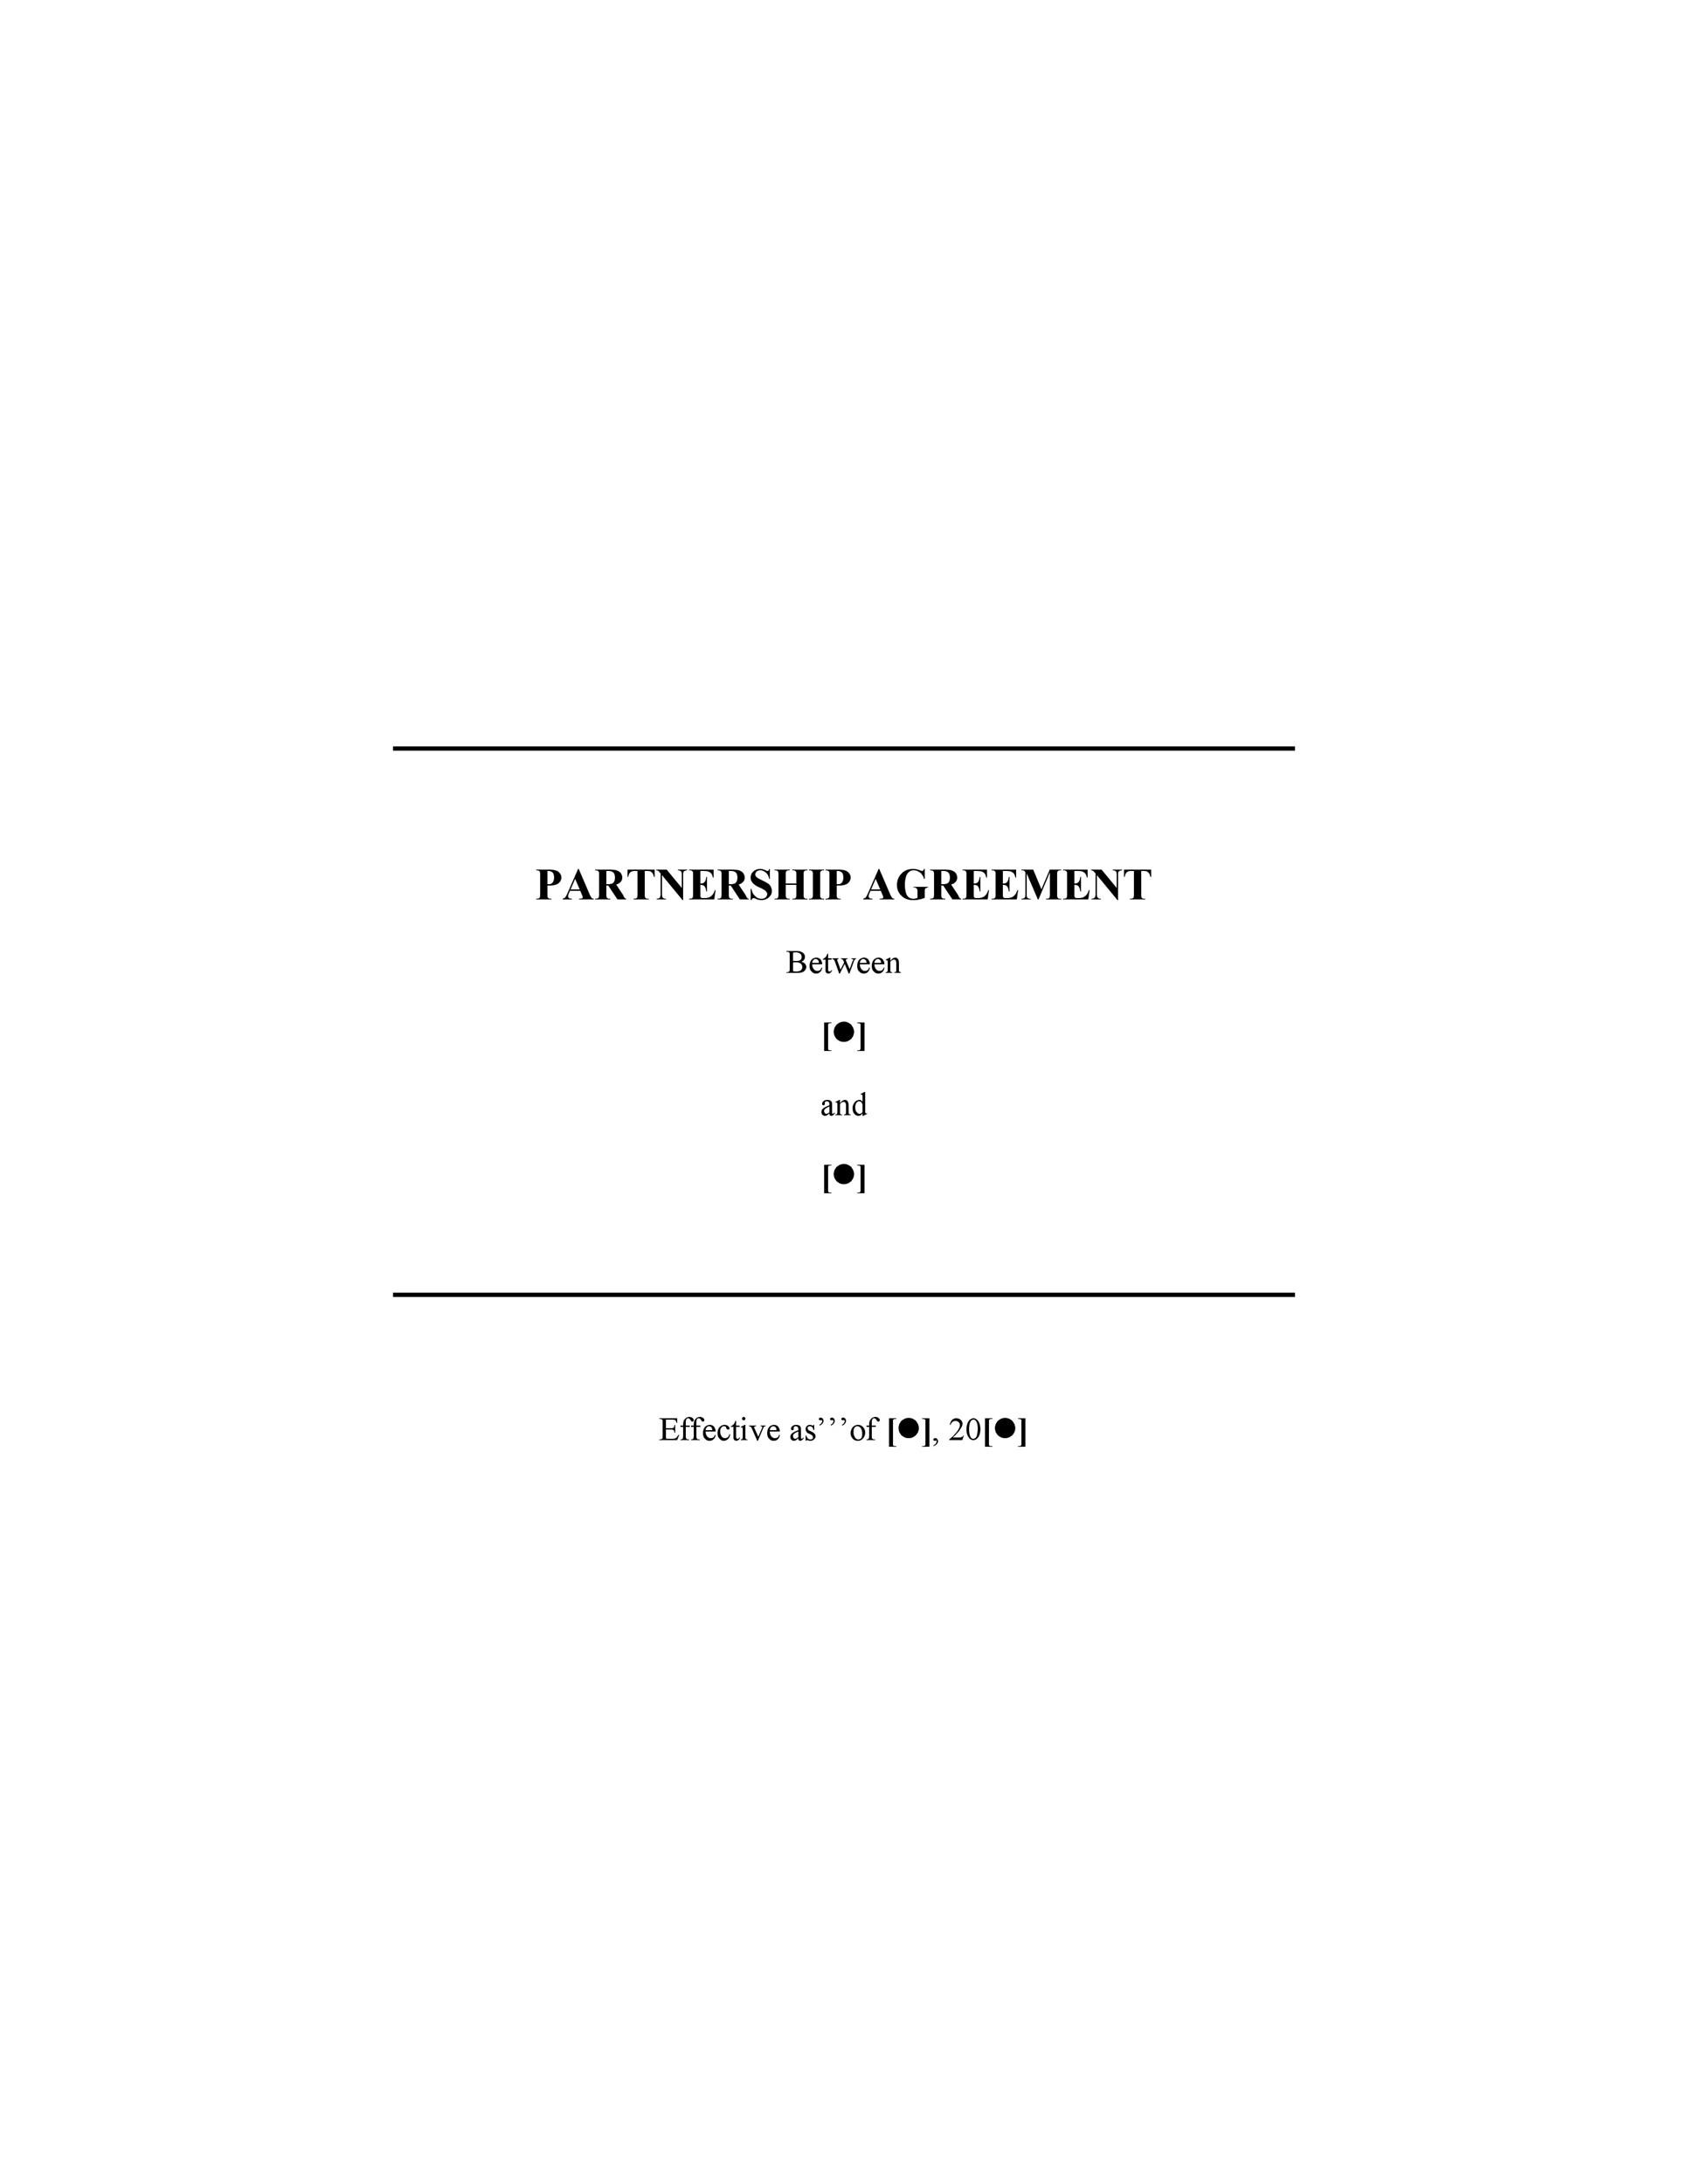 40 free partnership agreement templates business general printable partnership agreement template 01 accmission Image collections